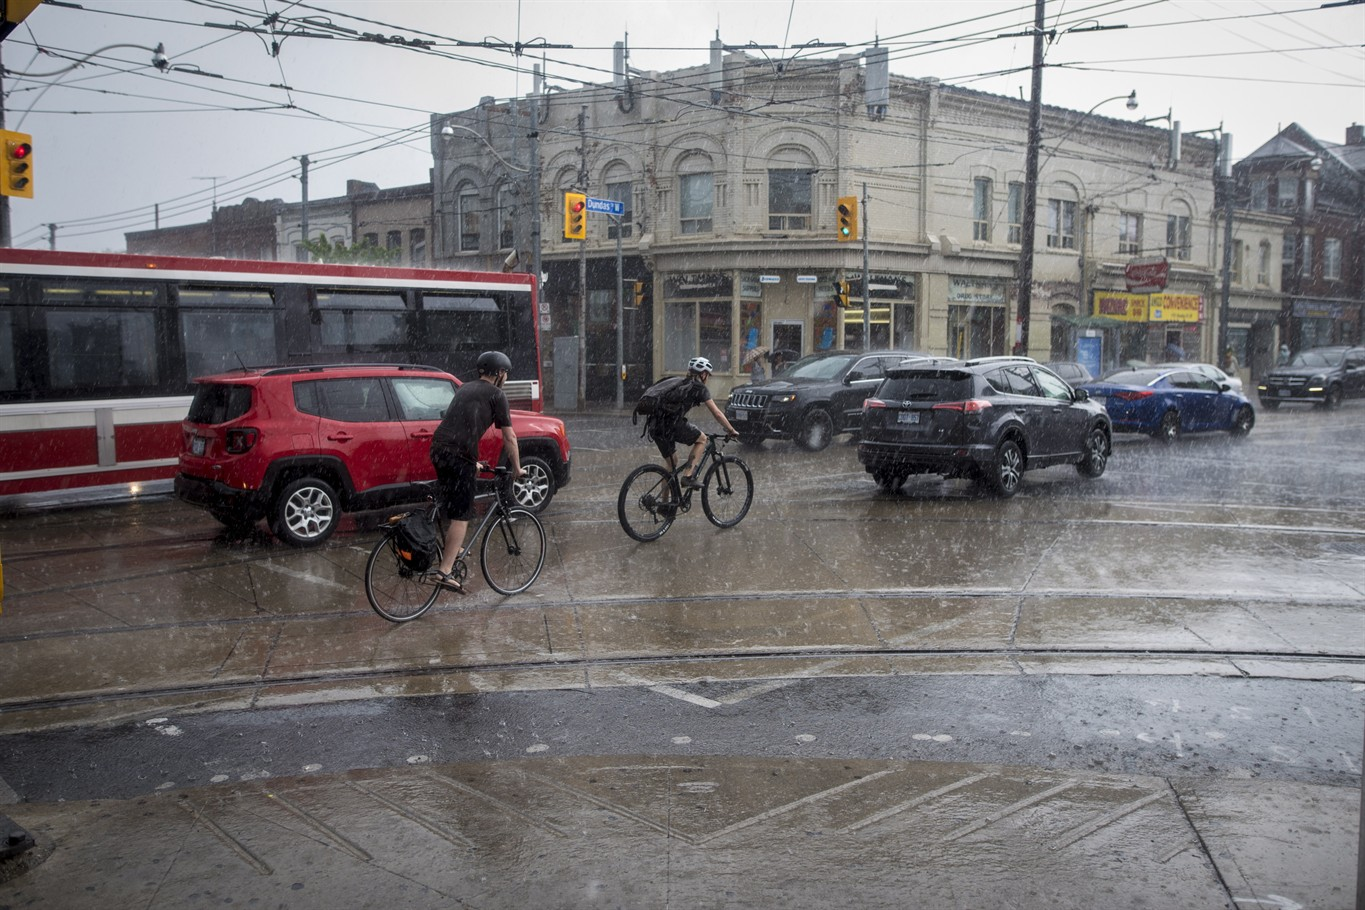 Severe thunderstorm warning issued for parts of GTA